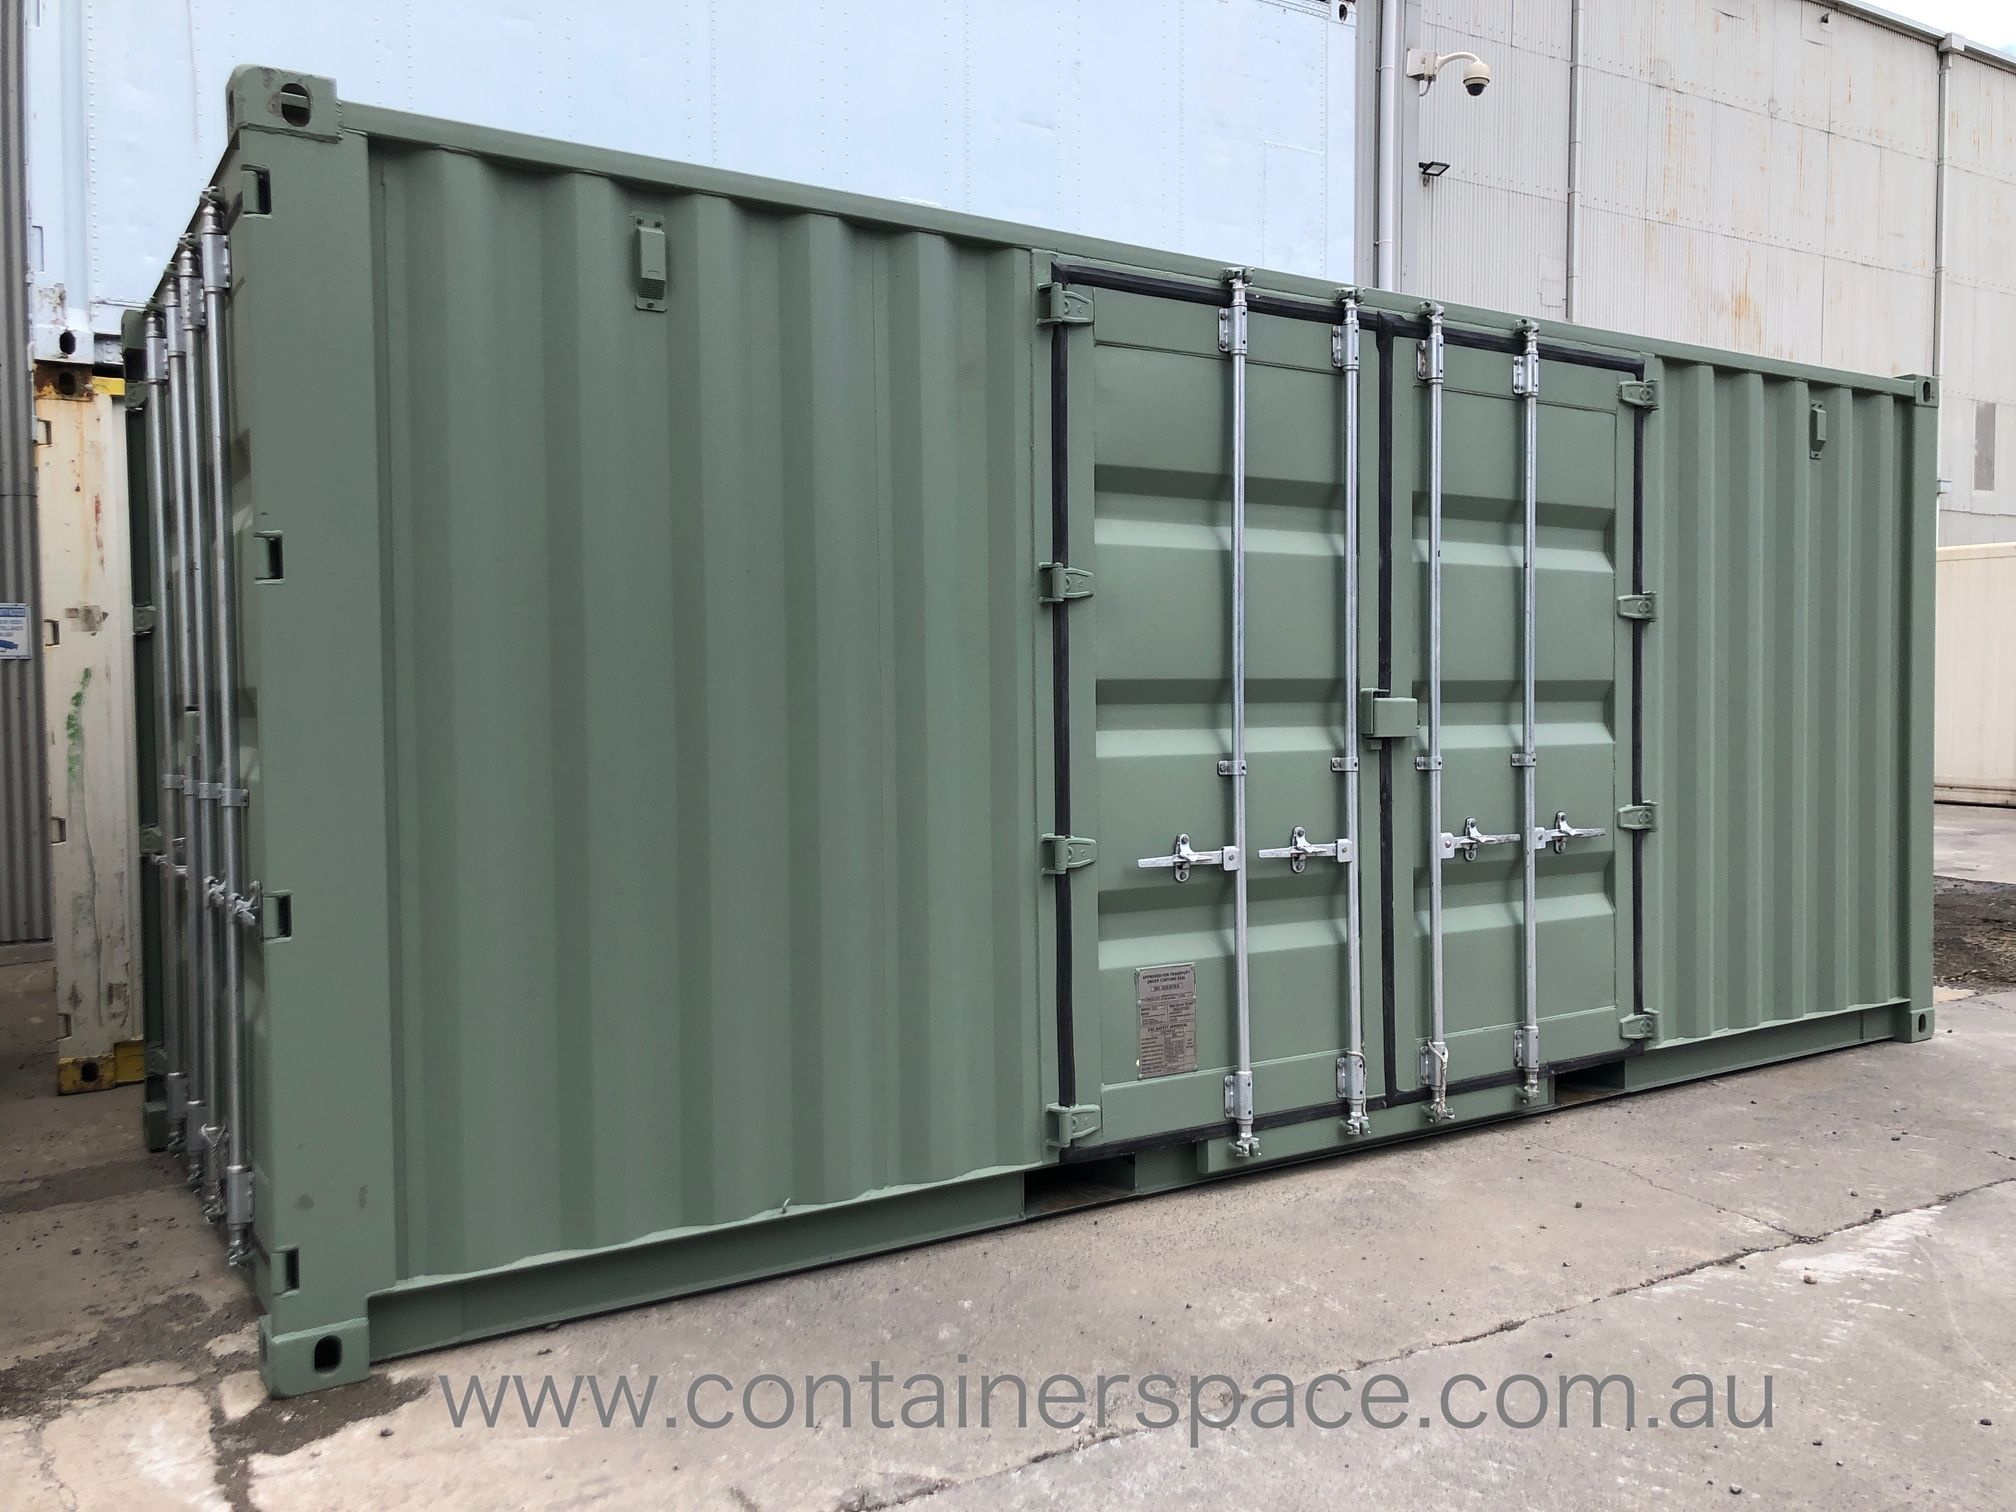 Shipping Containers For Sale In Melbourne Containerspace In 2020 Shipping Containers For Sale 20ft Shipping Container Shipping Container